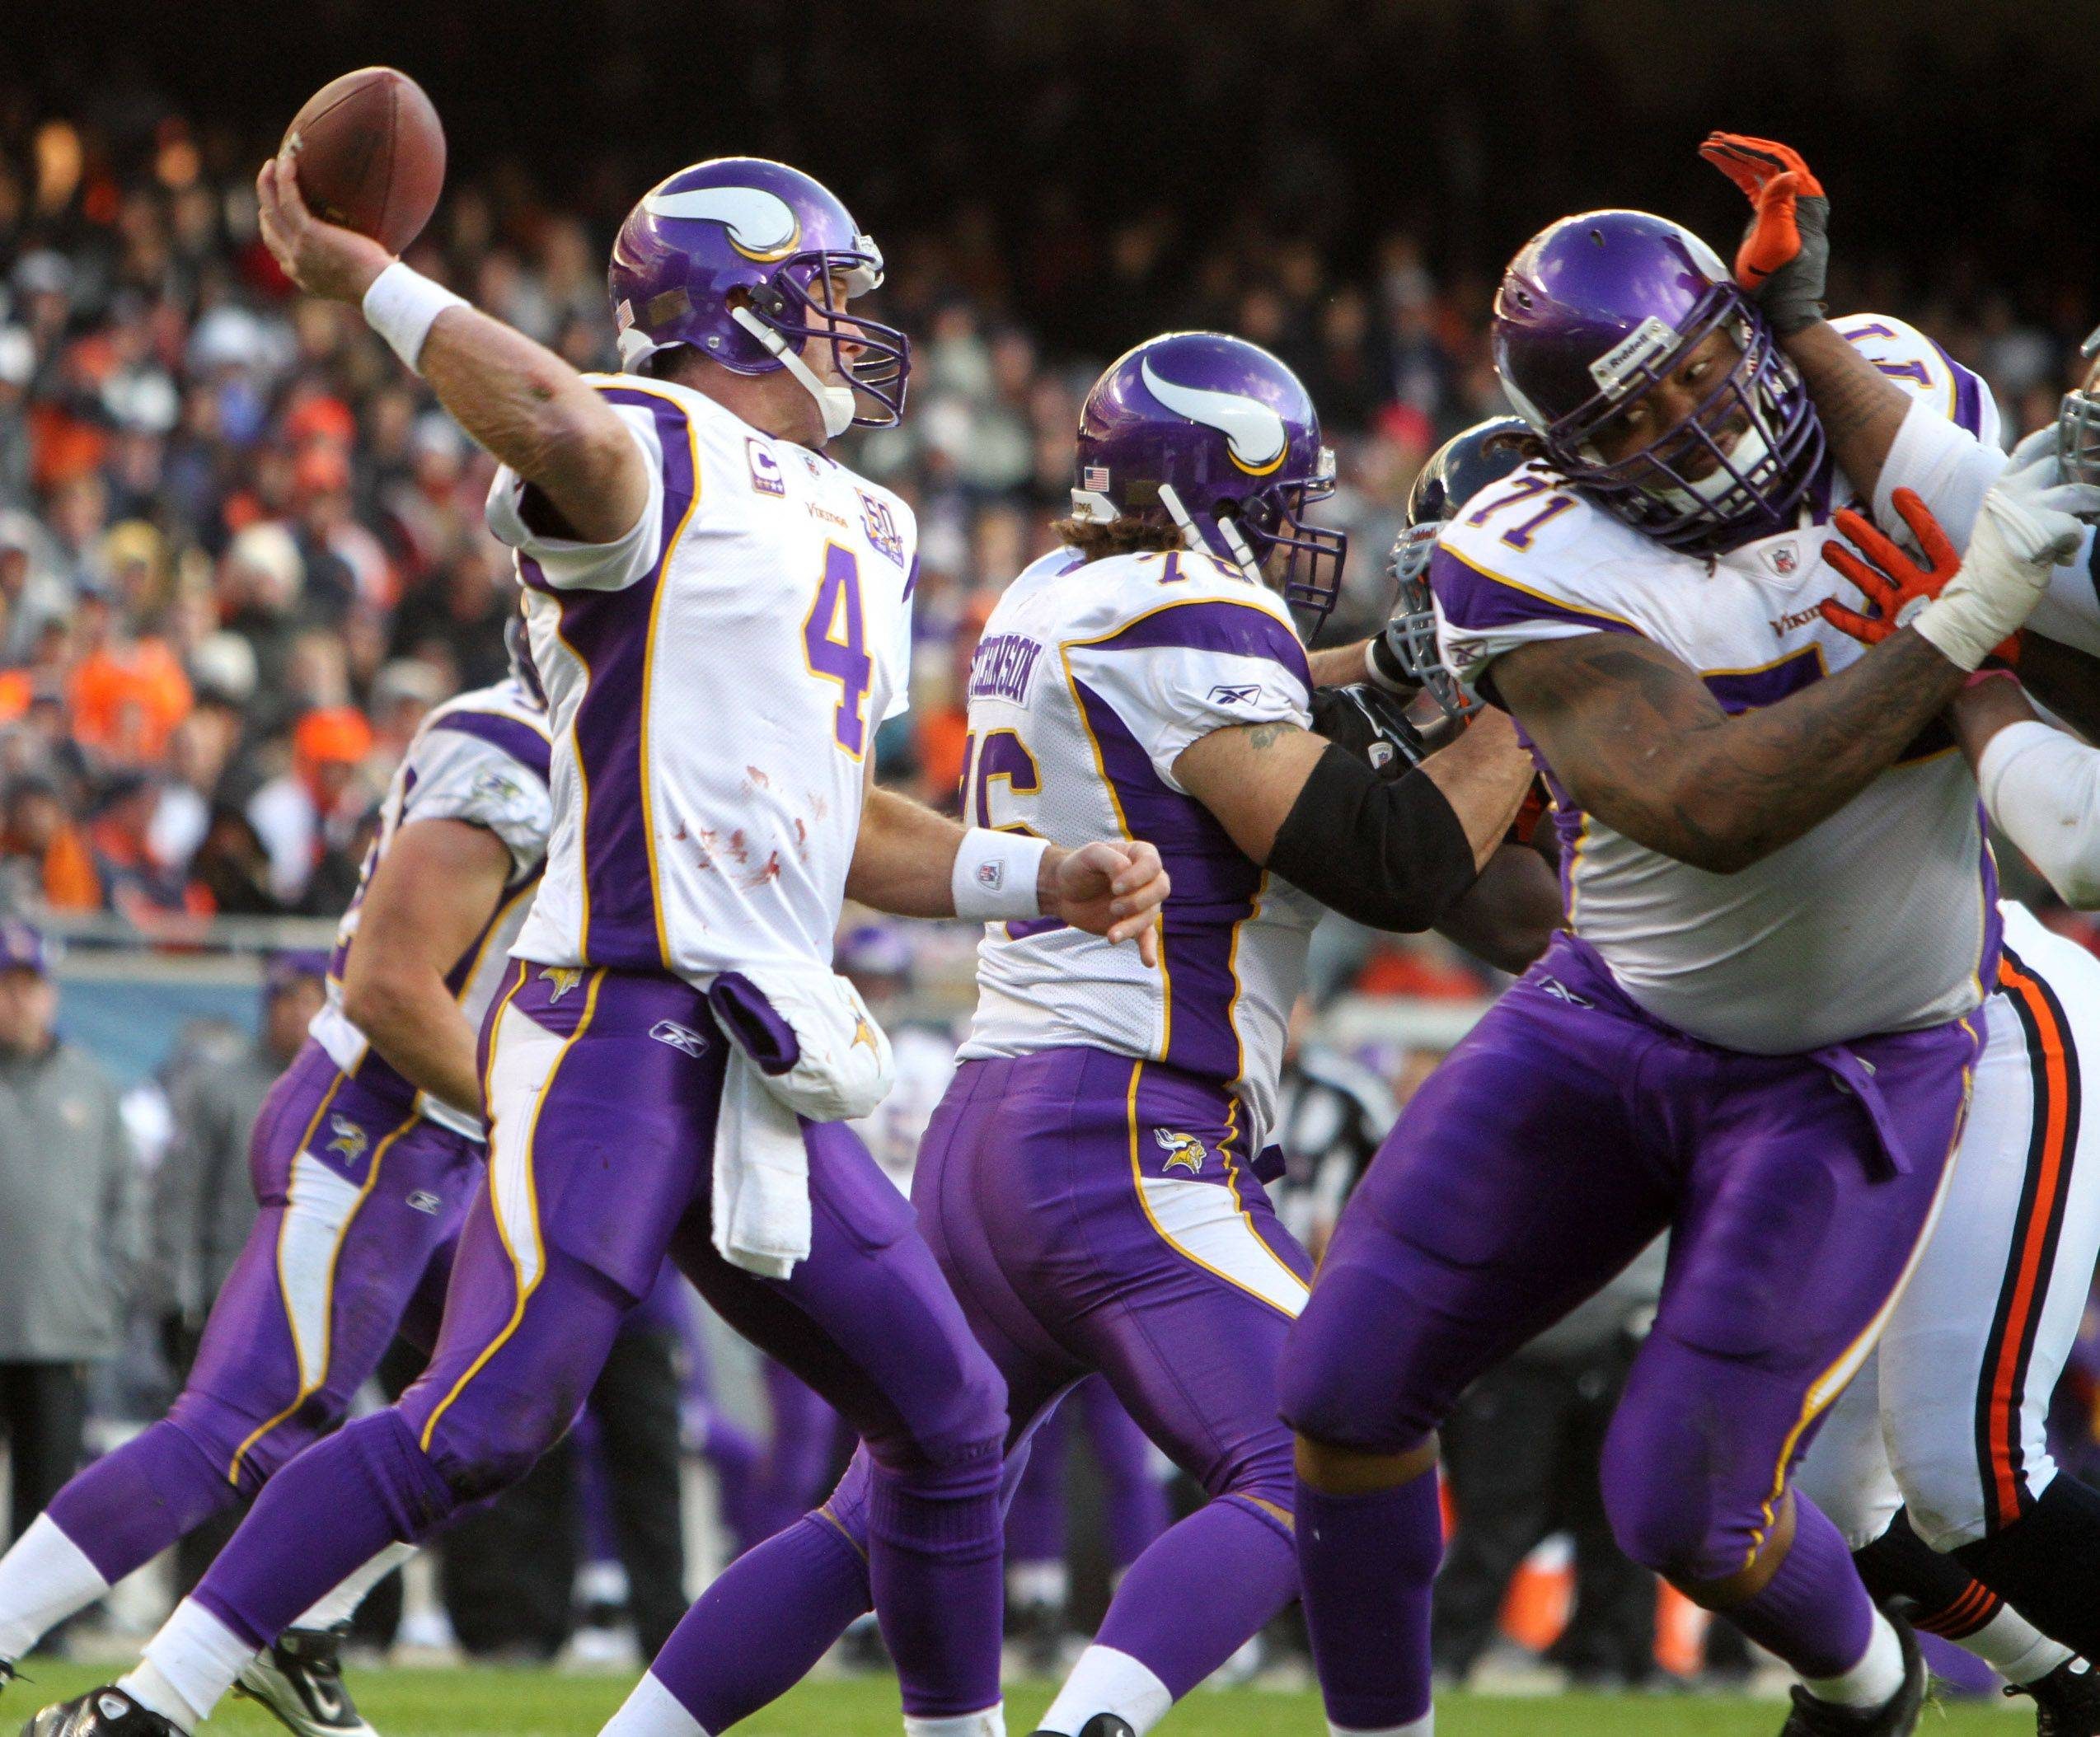 Minnesota Vikings' Brett Favre throws against the Bears at Soldier Field in the second half.